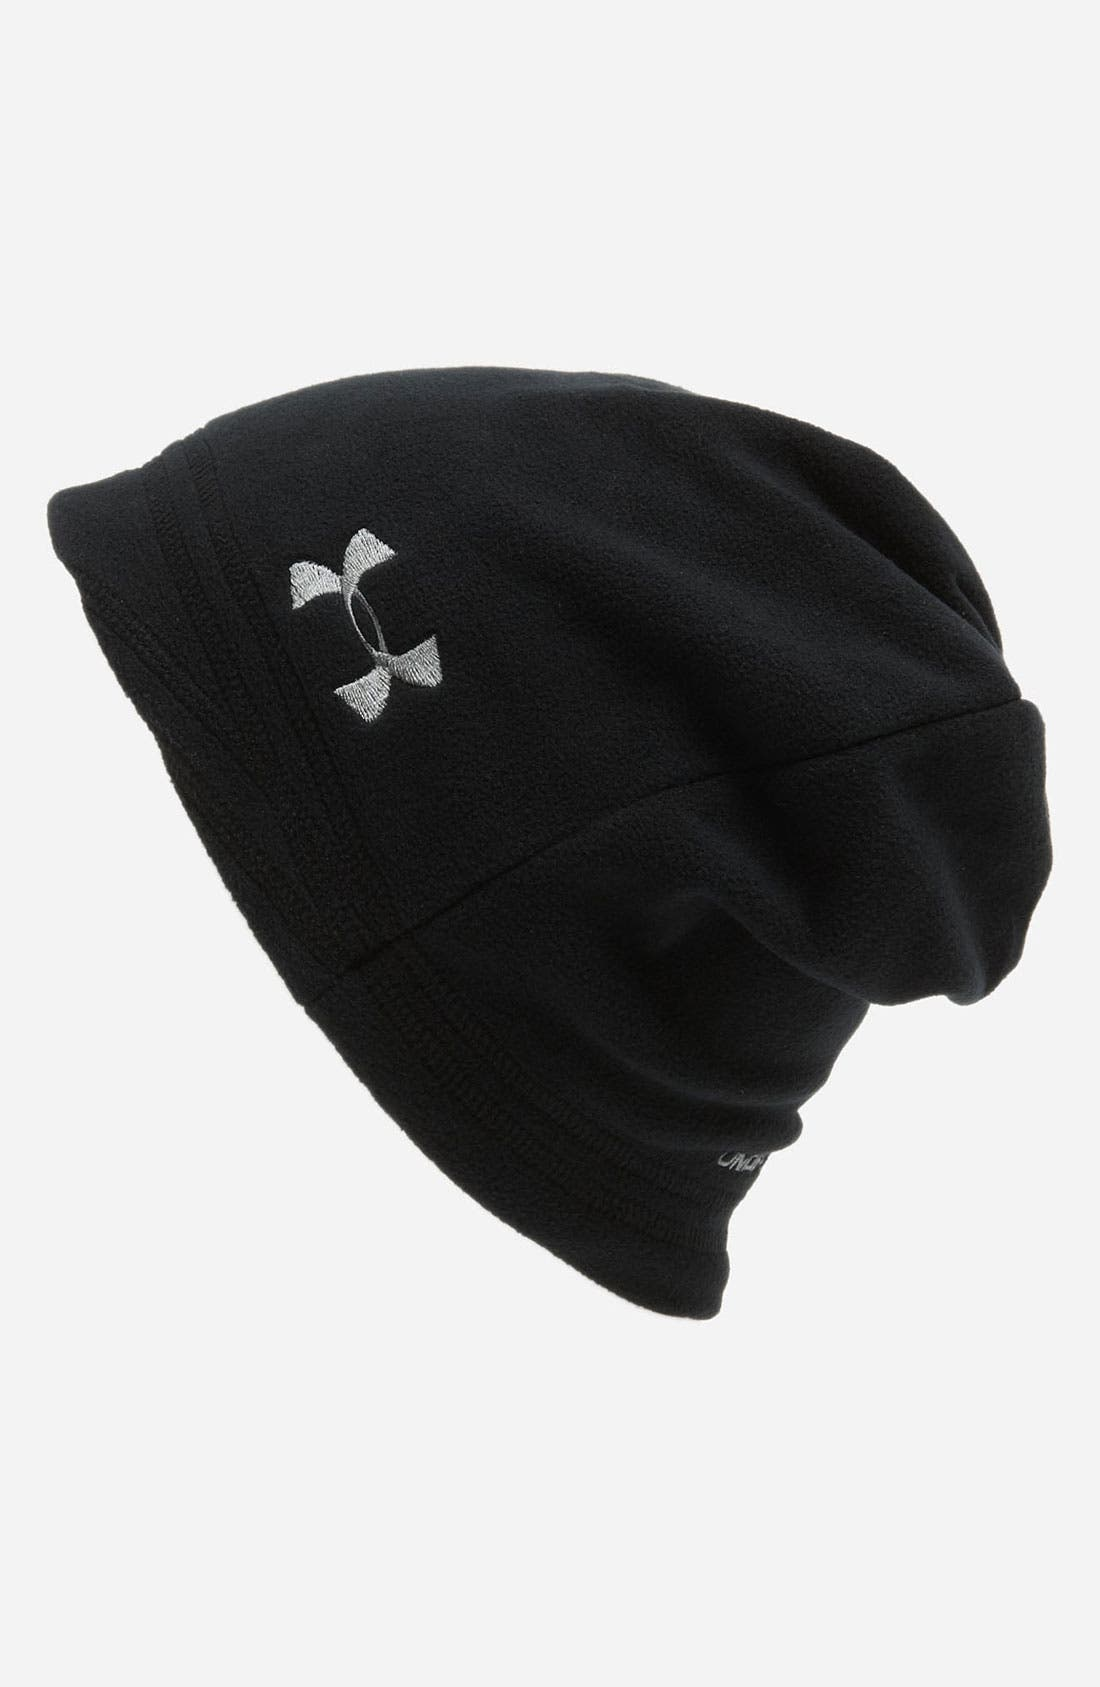 Main Image - Under Armour 'Blustery' Beanie